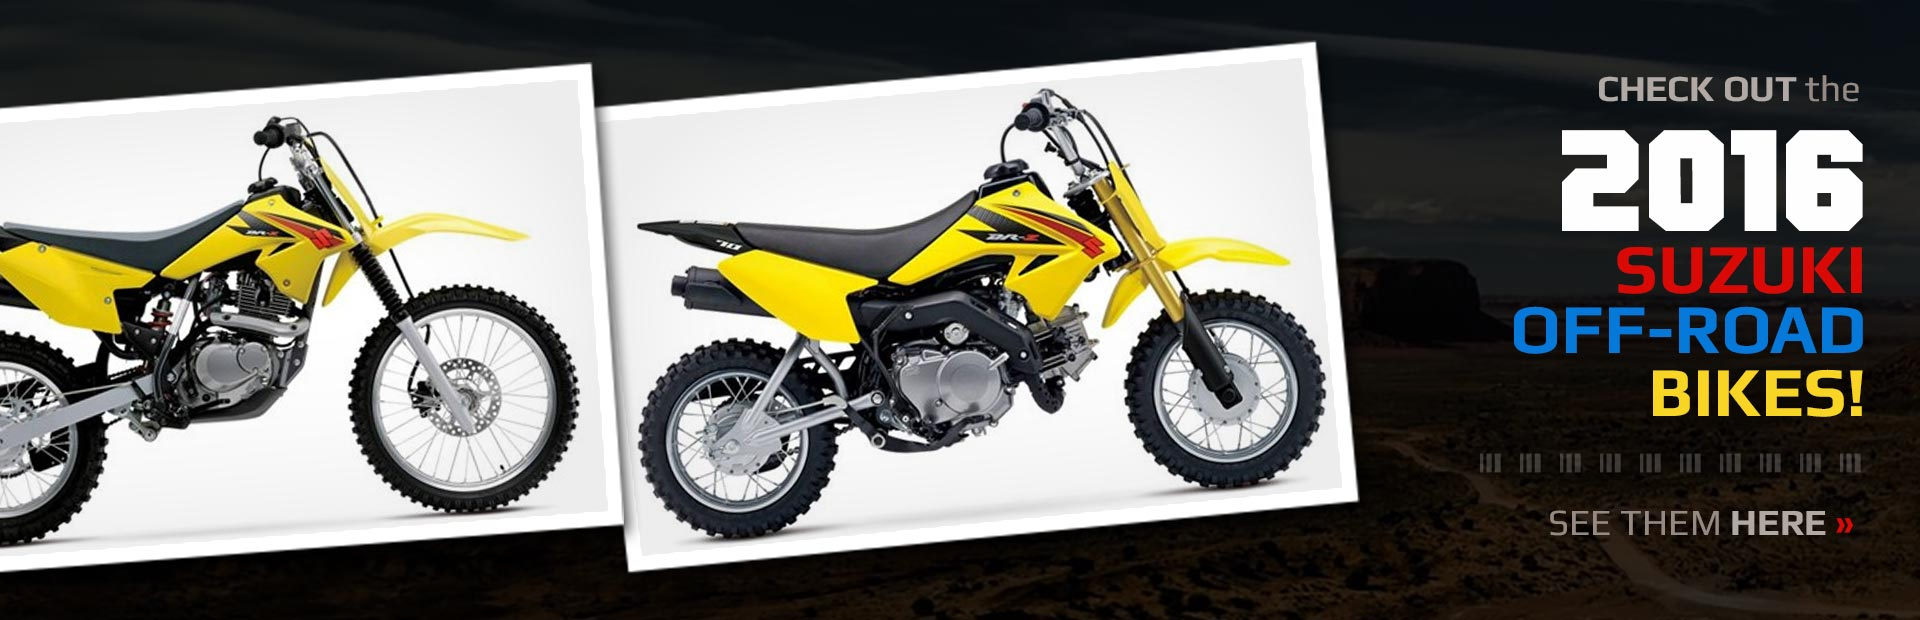 2016 Suzuki Off-Road Bikes: Click here to view the models.